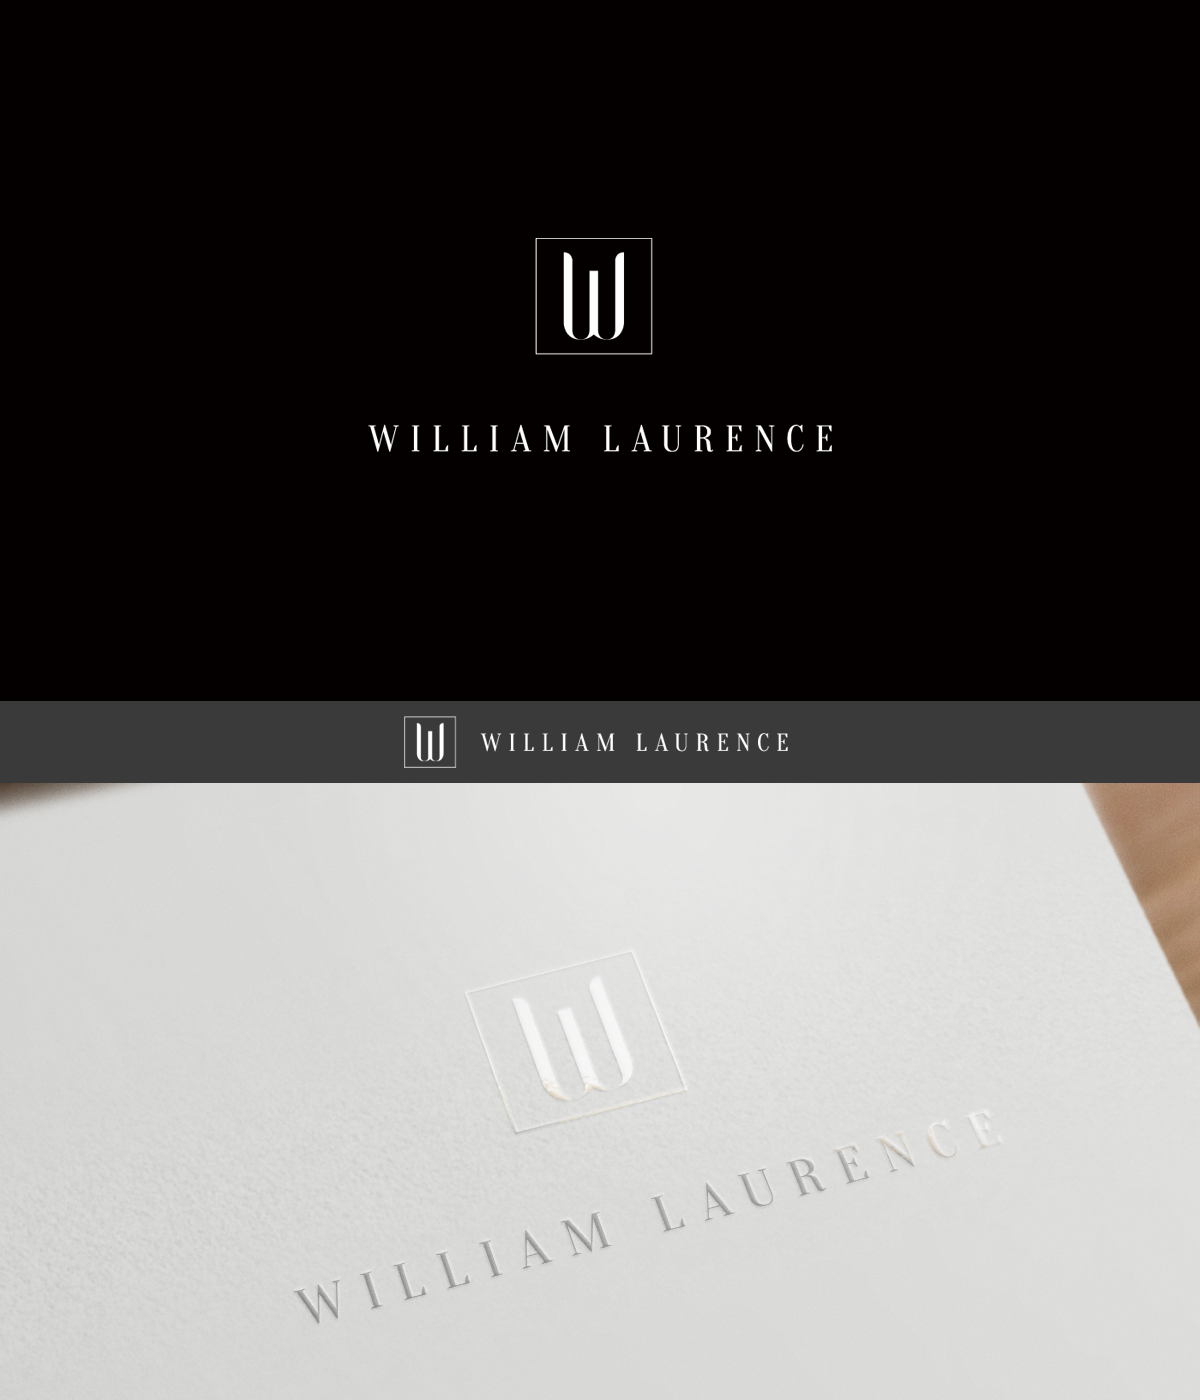 William Laurence, fashion-style photography, needs a logo